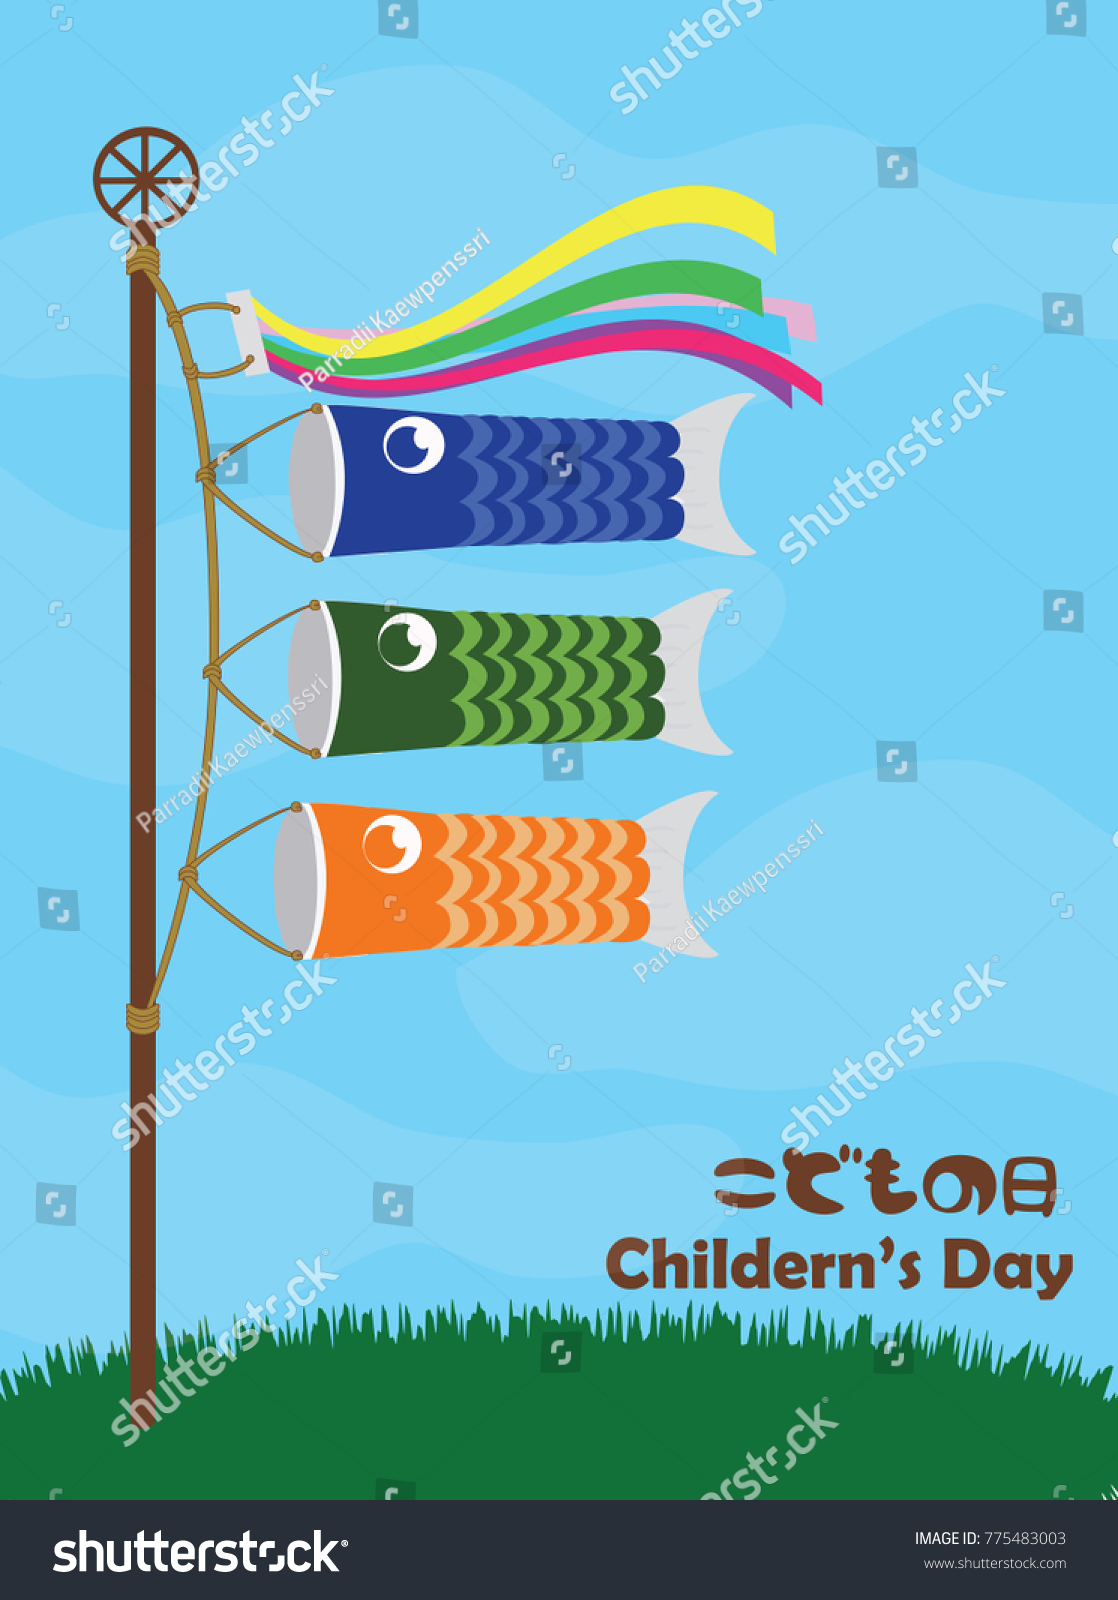 hight resolution of koinobori day koi fish flags are put up on children s day in japan